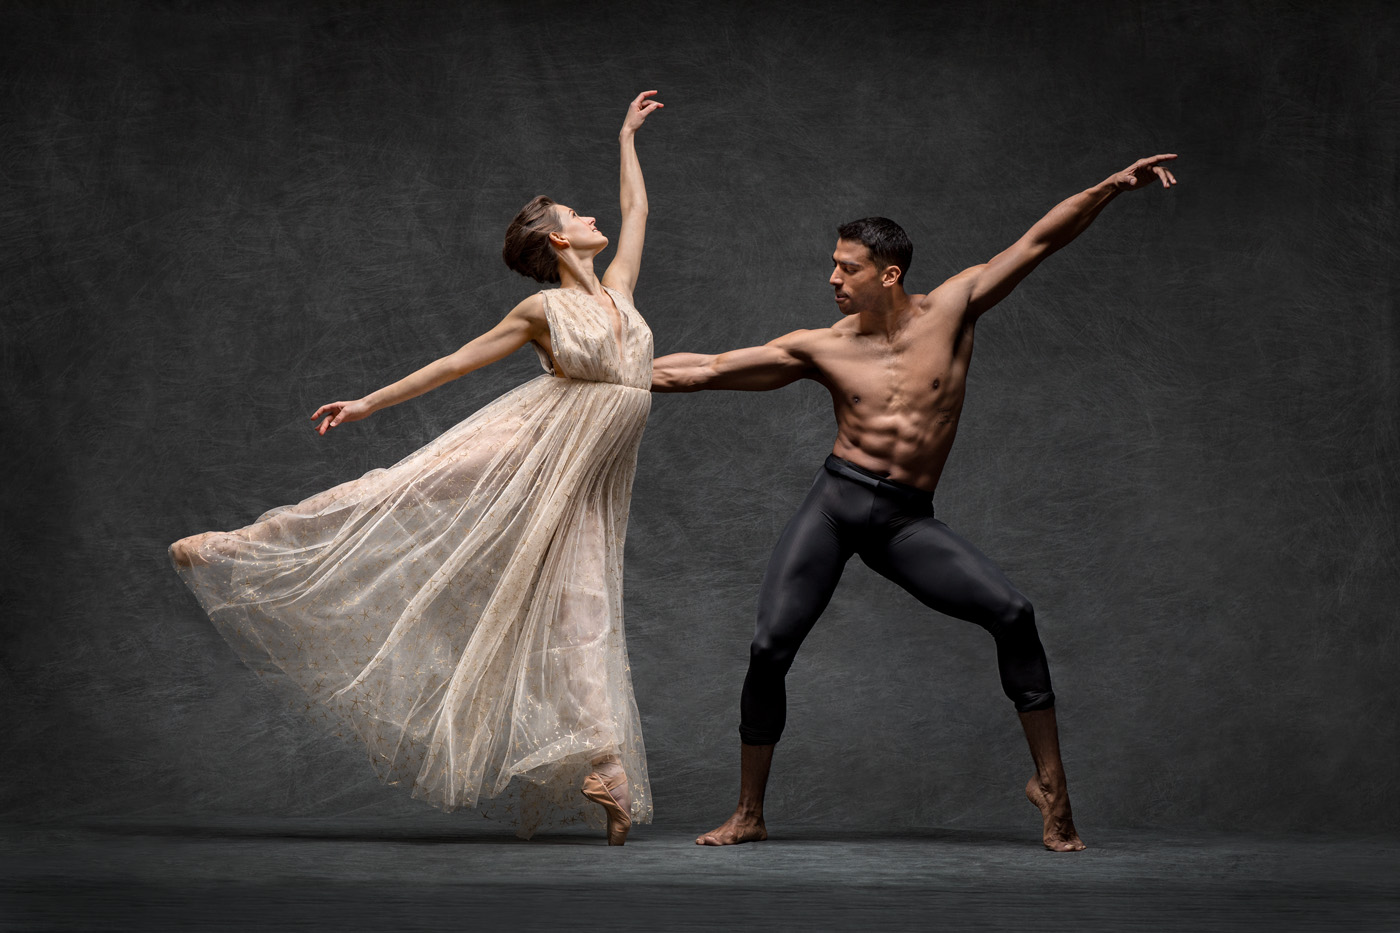 Two ballet dancers strike poses while dancing against dark backdrop.